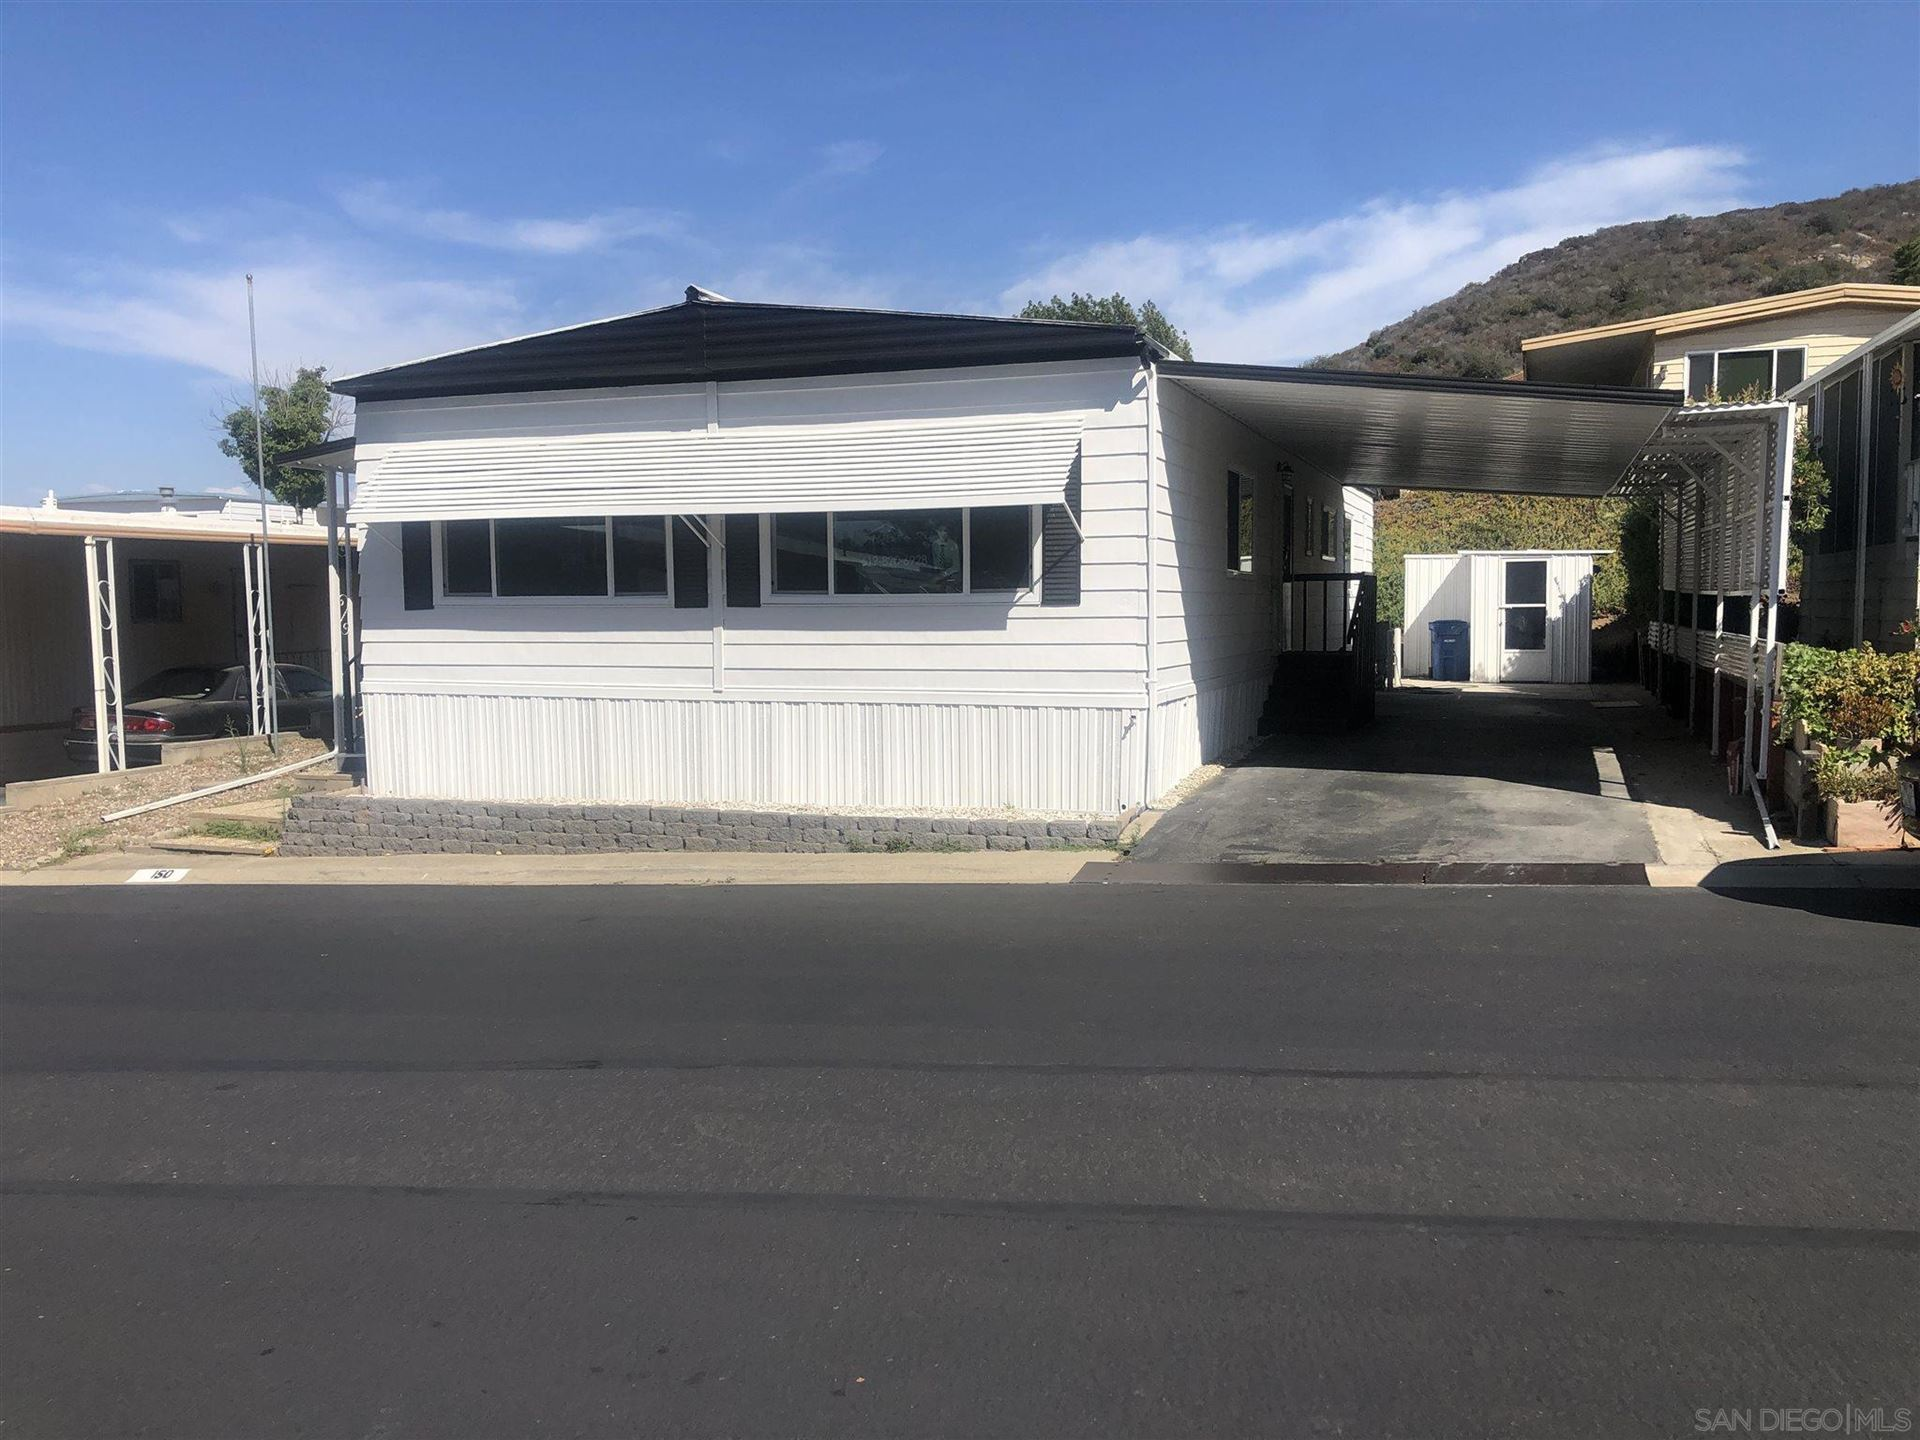 Photo of 7467 Mission Gorge Rd #150, Santee, CA 92071 (MLS # 210020483)